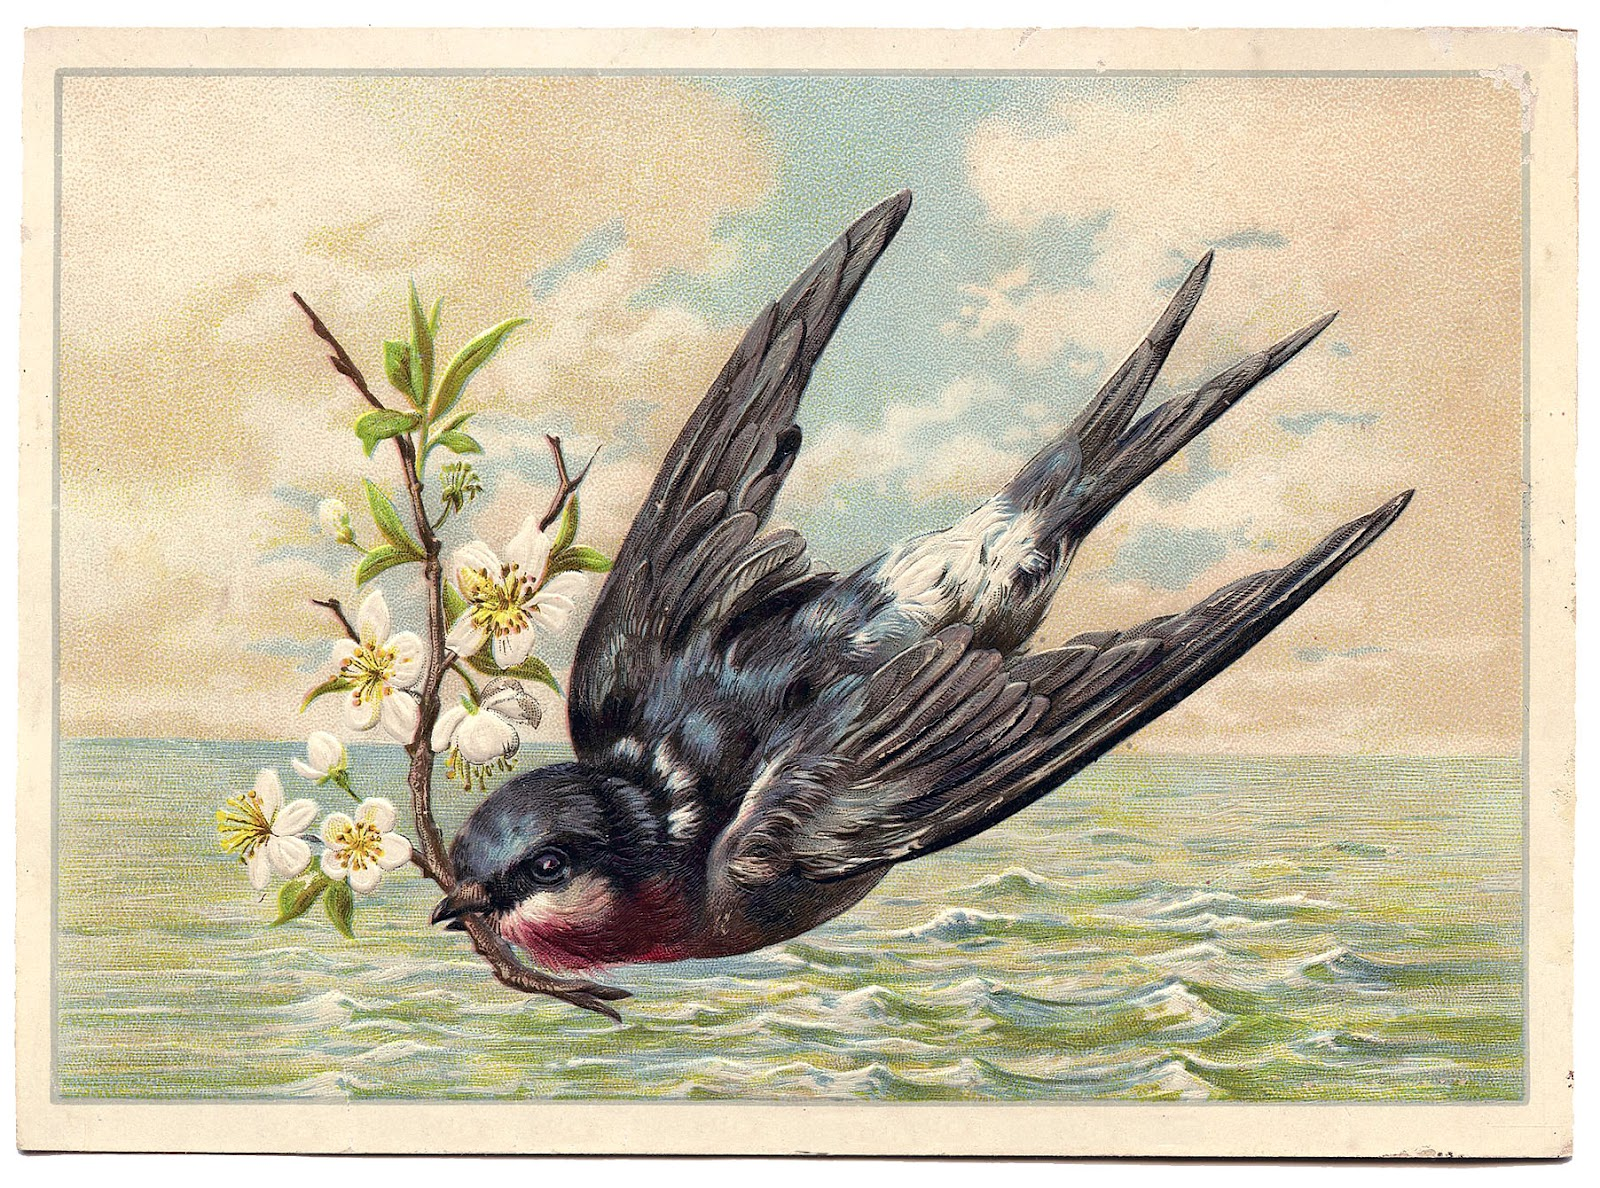 Antique Image - Swallow flying across The Sea - The ...